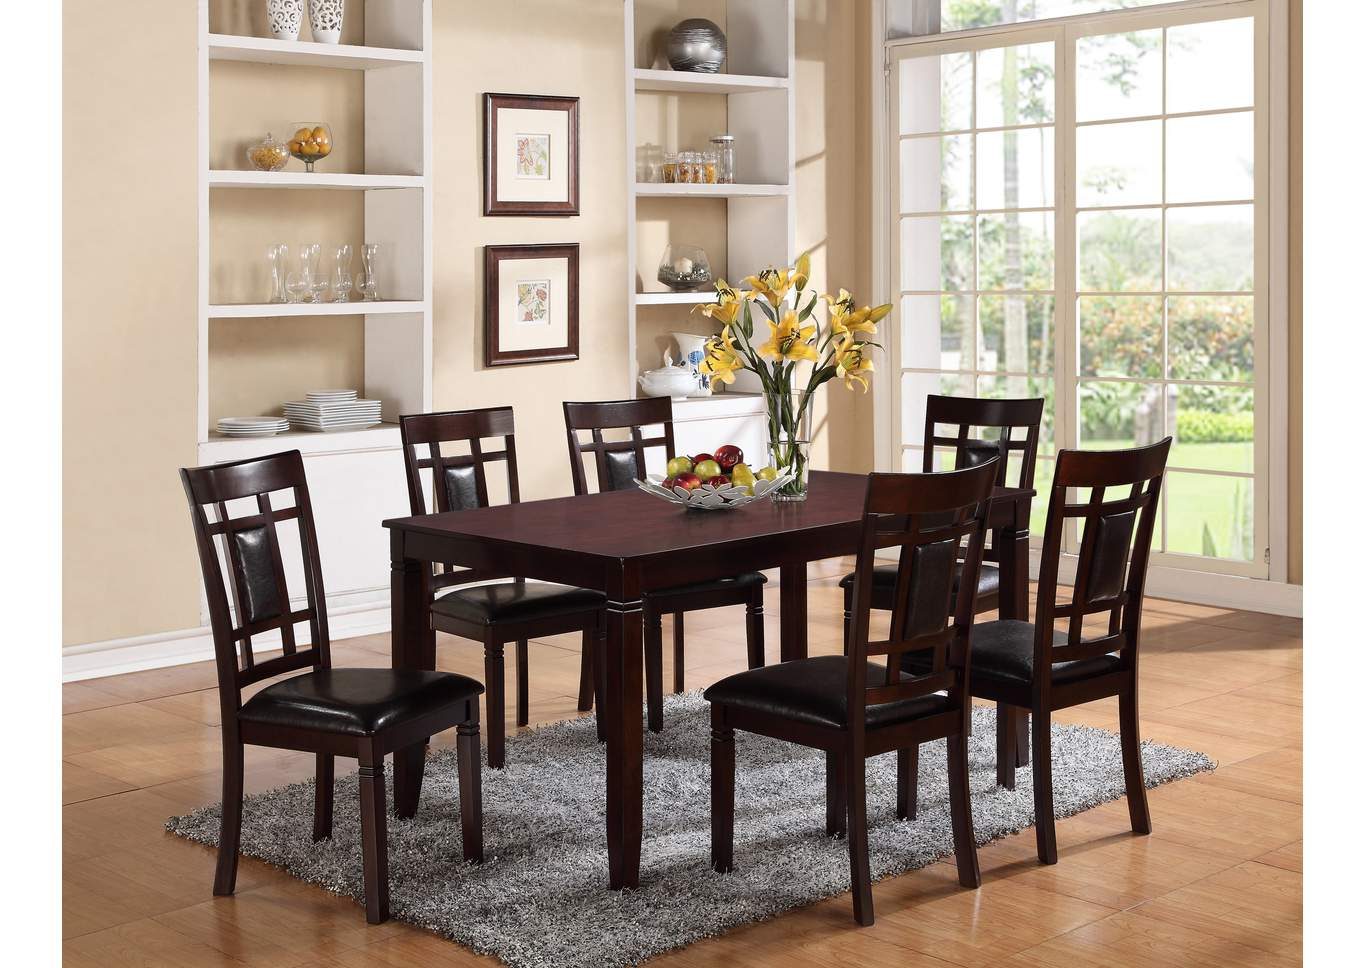 Fowler Furniture Mullins SC Paige Dinette Table w6 Side Chairs